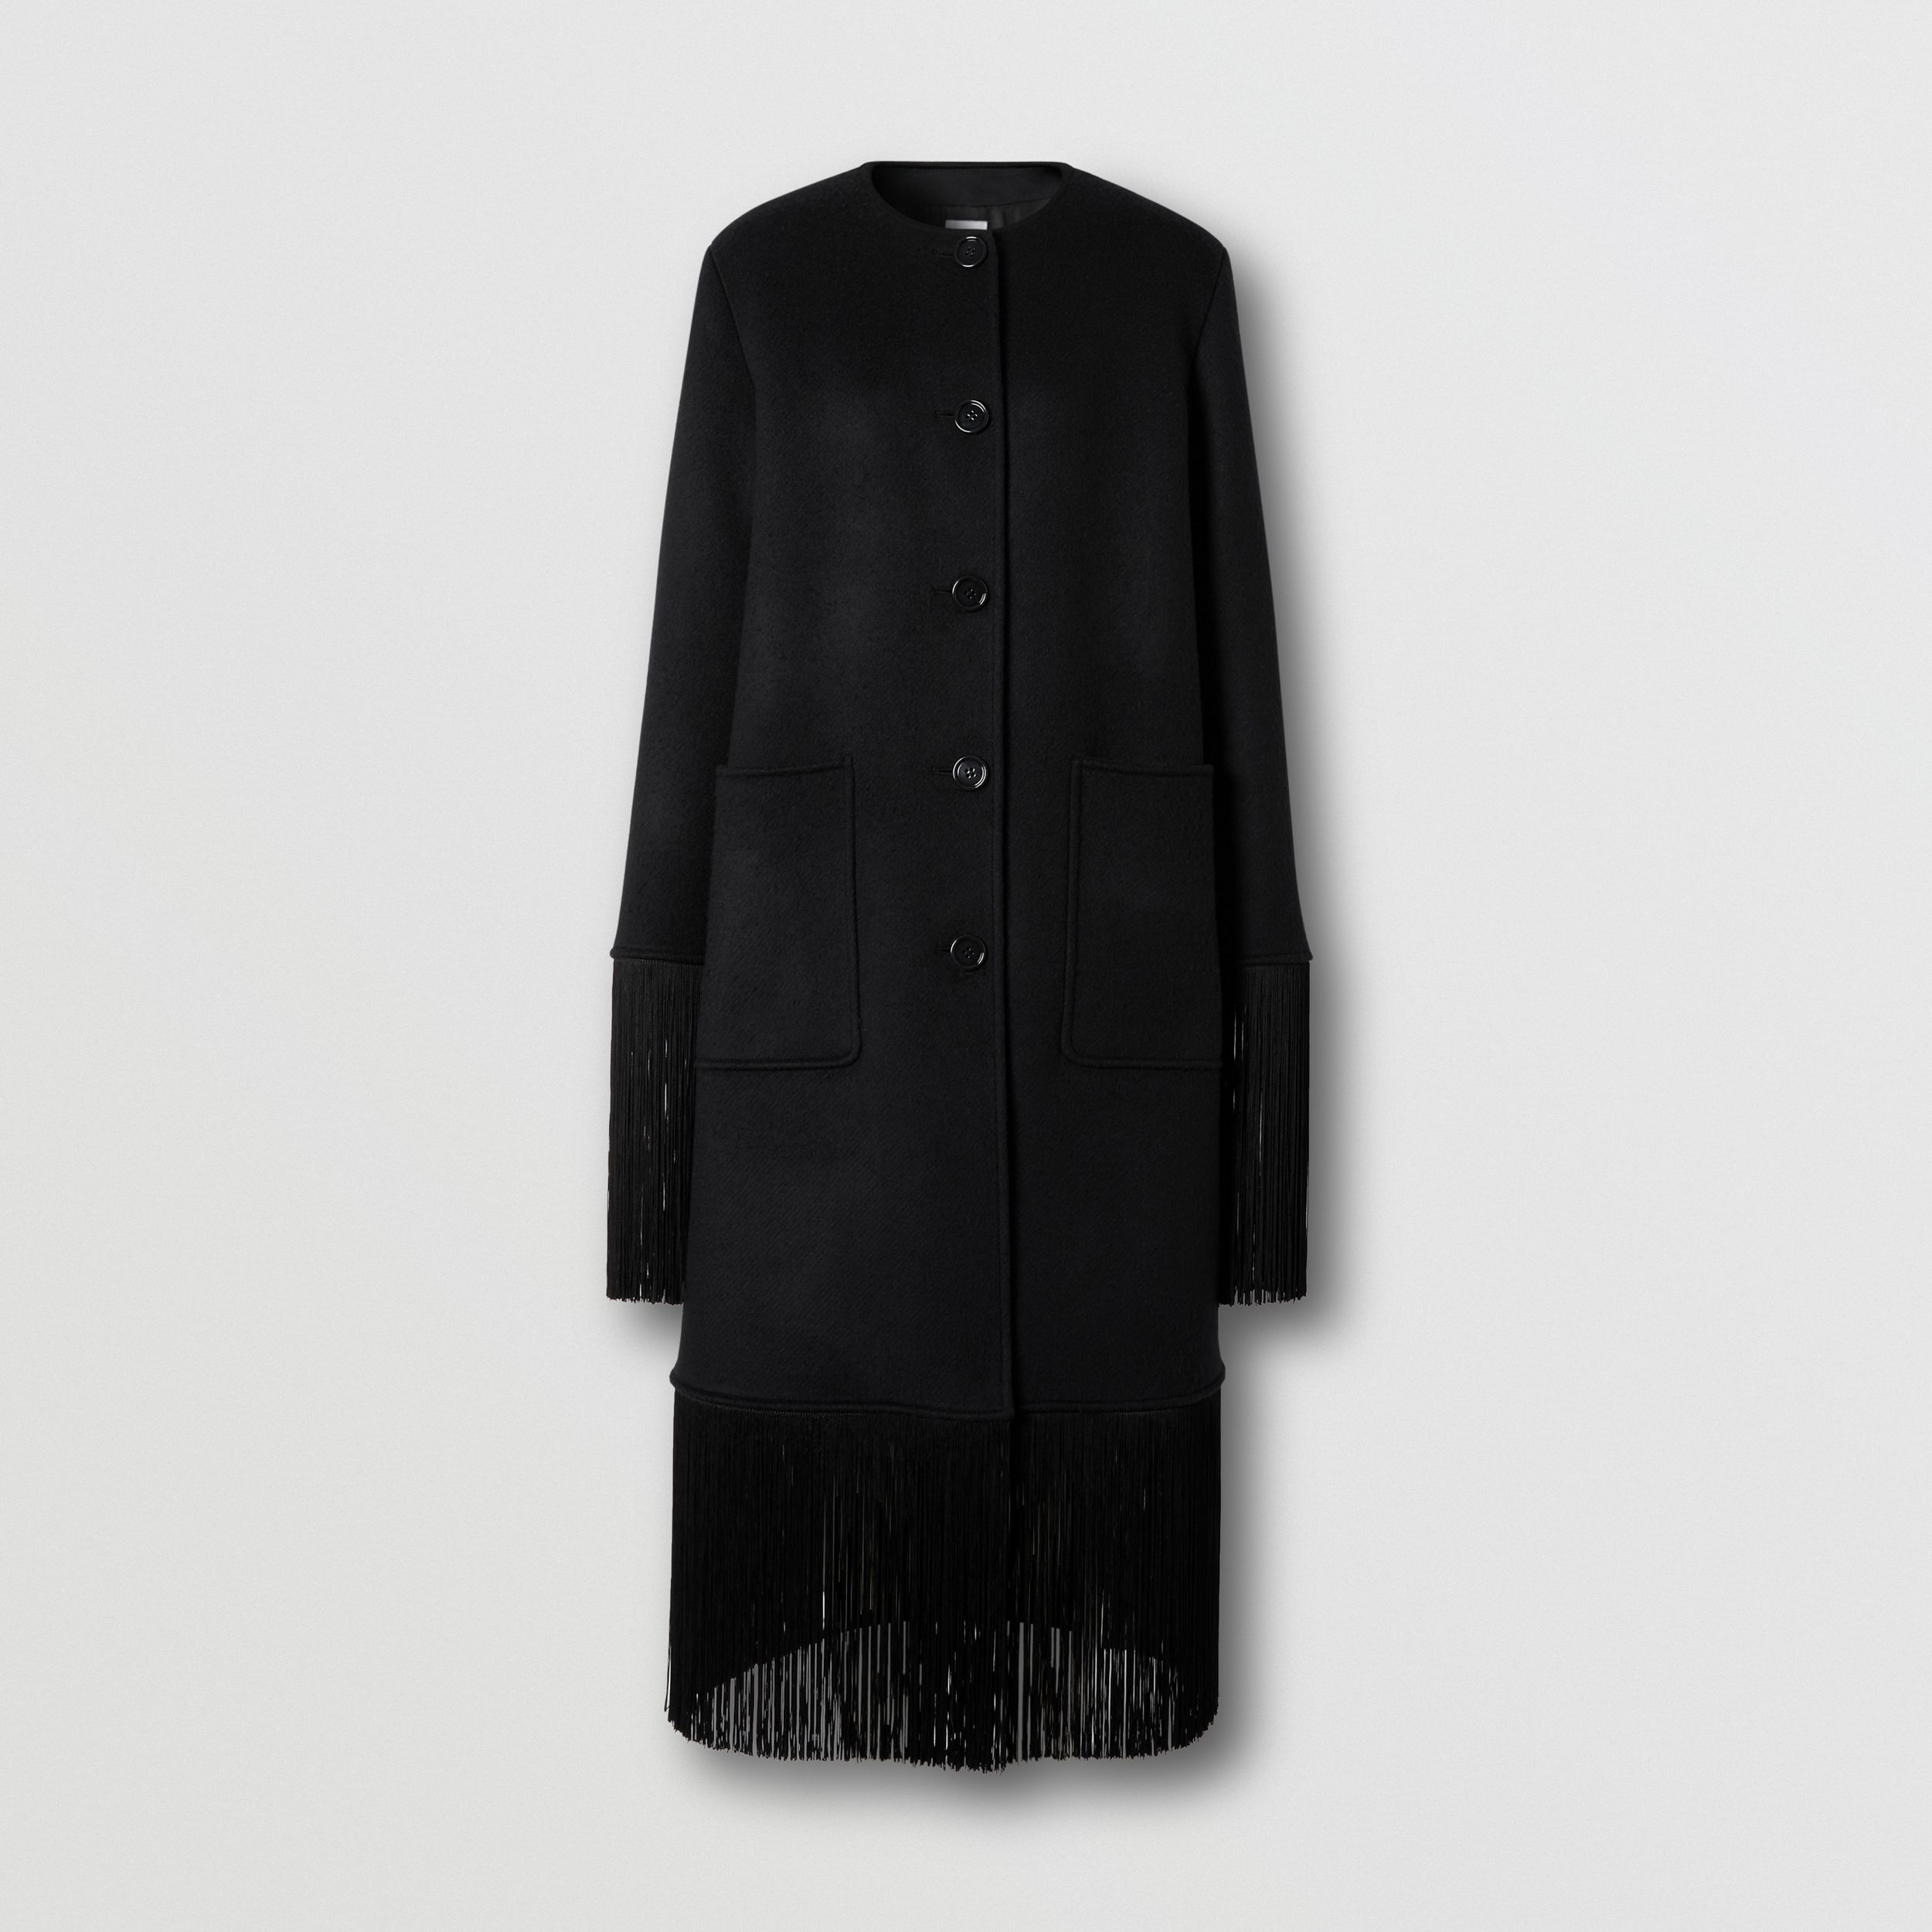 Fringed Double-faced Wool Cashmere Car Coat in Black - Women | Burberry - 4